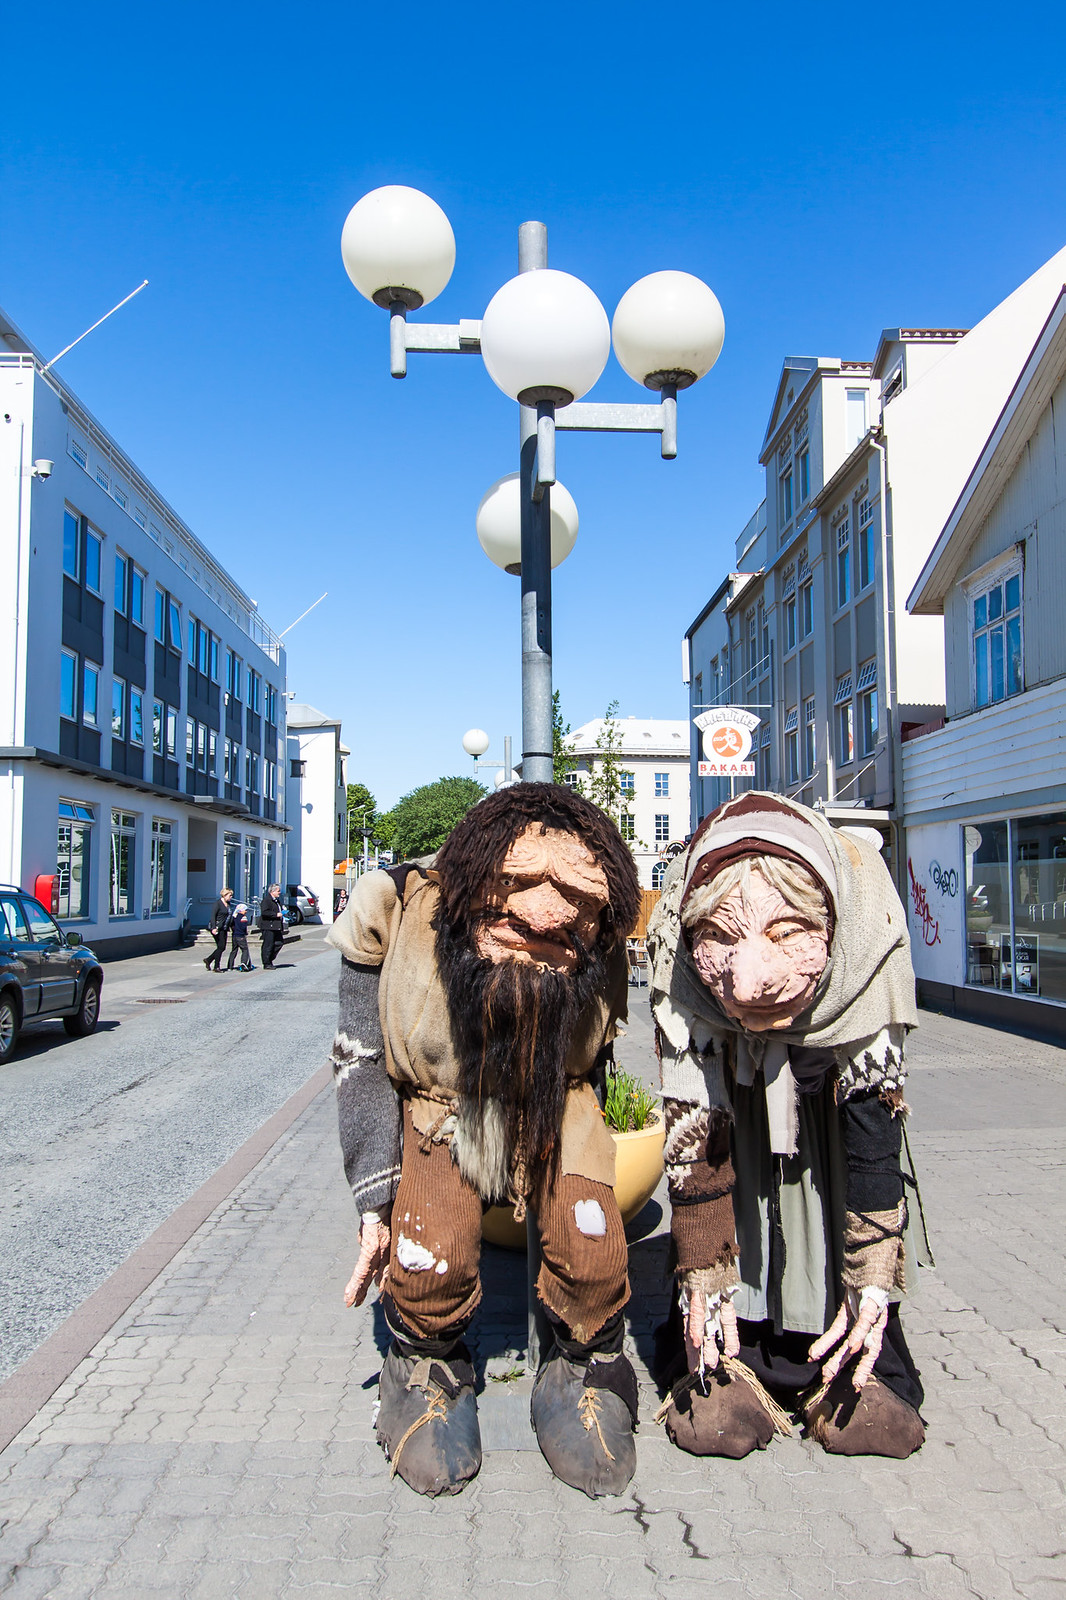 Akureri Town. Trolls on main street